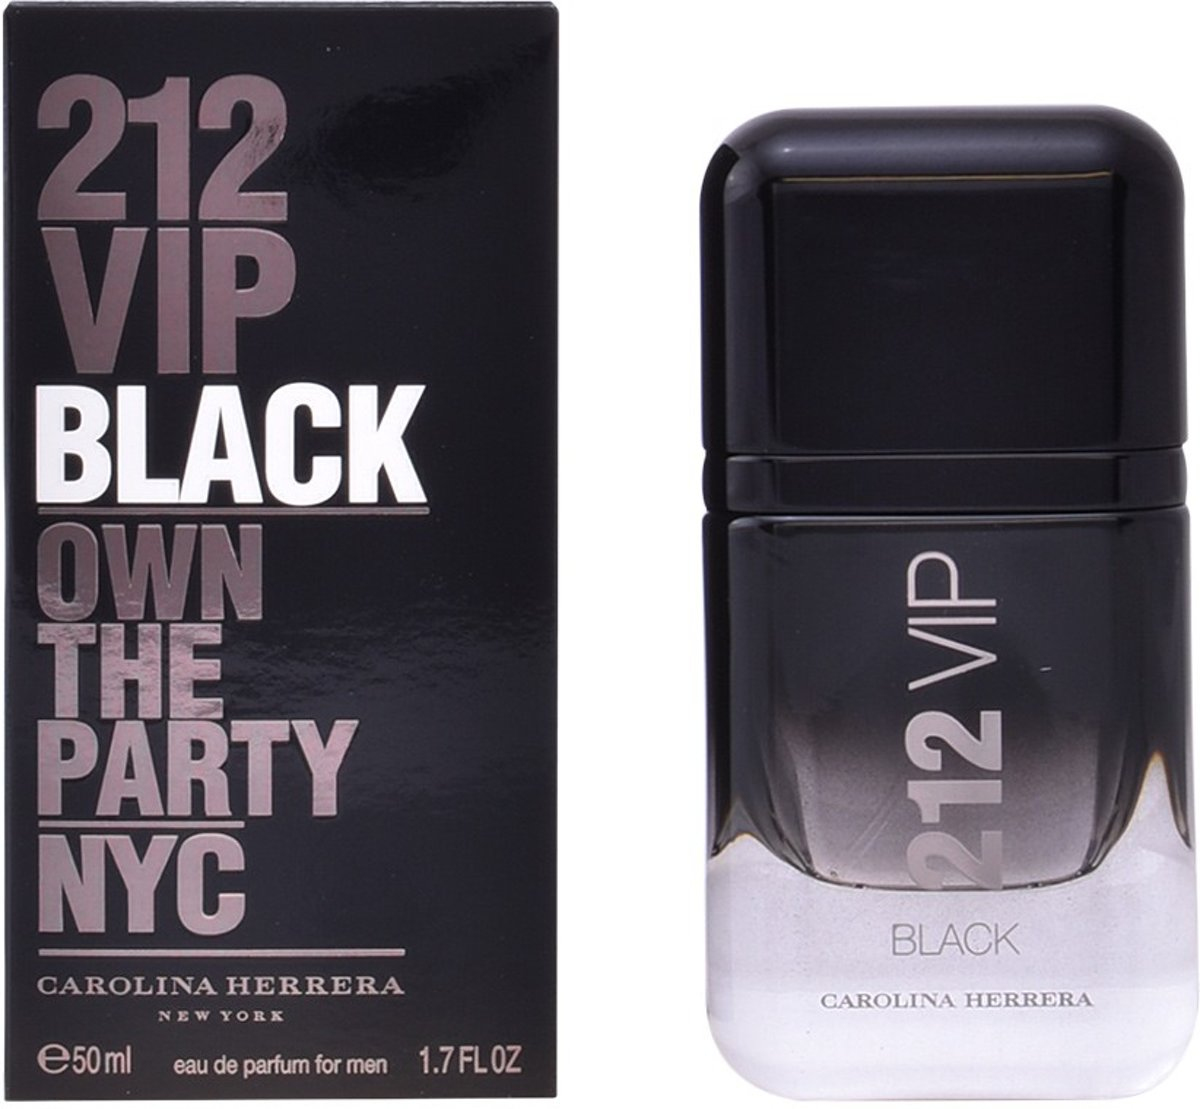 MULTI BUNDEL 2 stuks 212 VIP BLACK Eau de Perfume Spray 50 ml